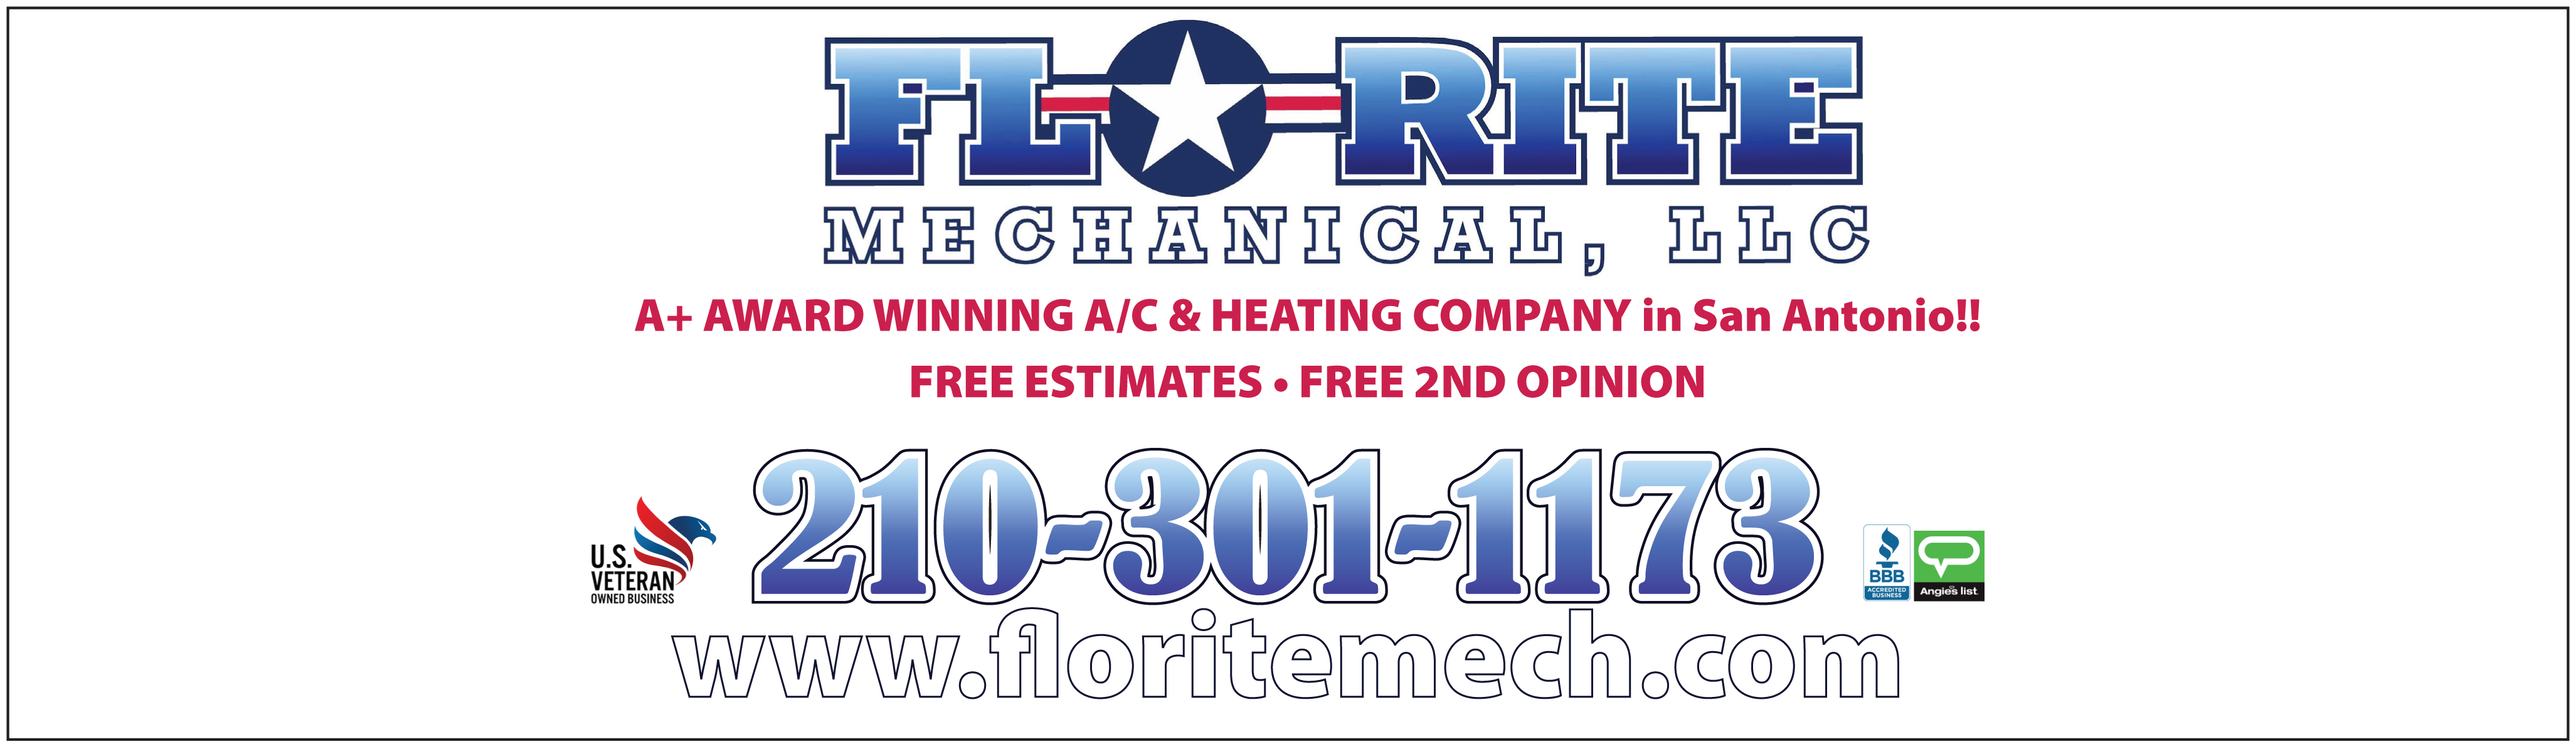 http://www.neighborhoodnews.com/wp-content/uploads/2016/09/Flo-Rite-Mechanical_Web-Banner.jpg